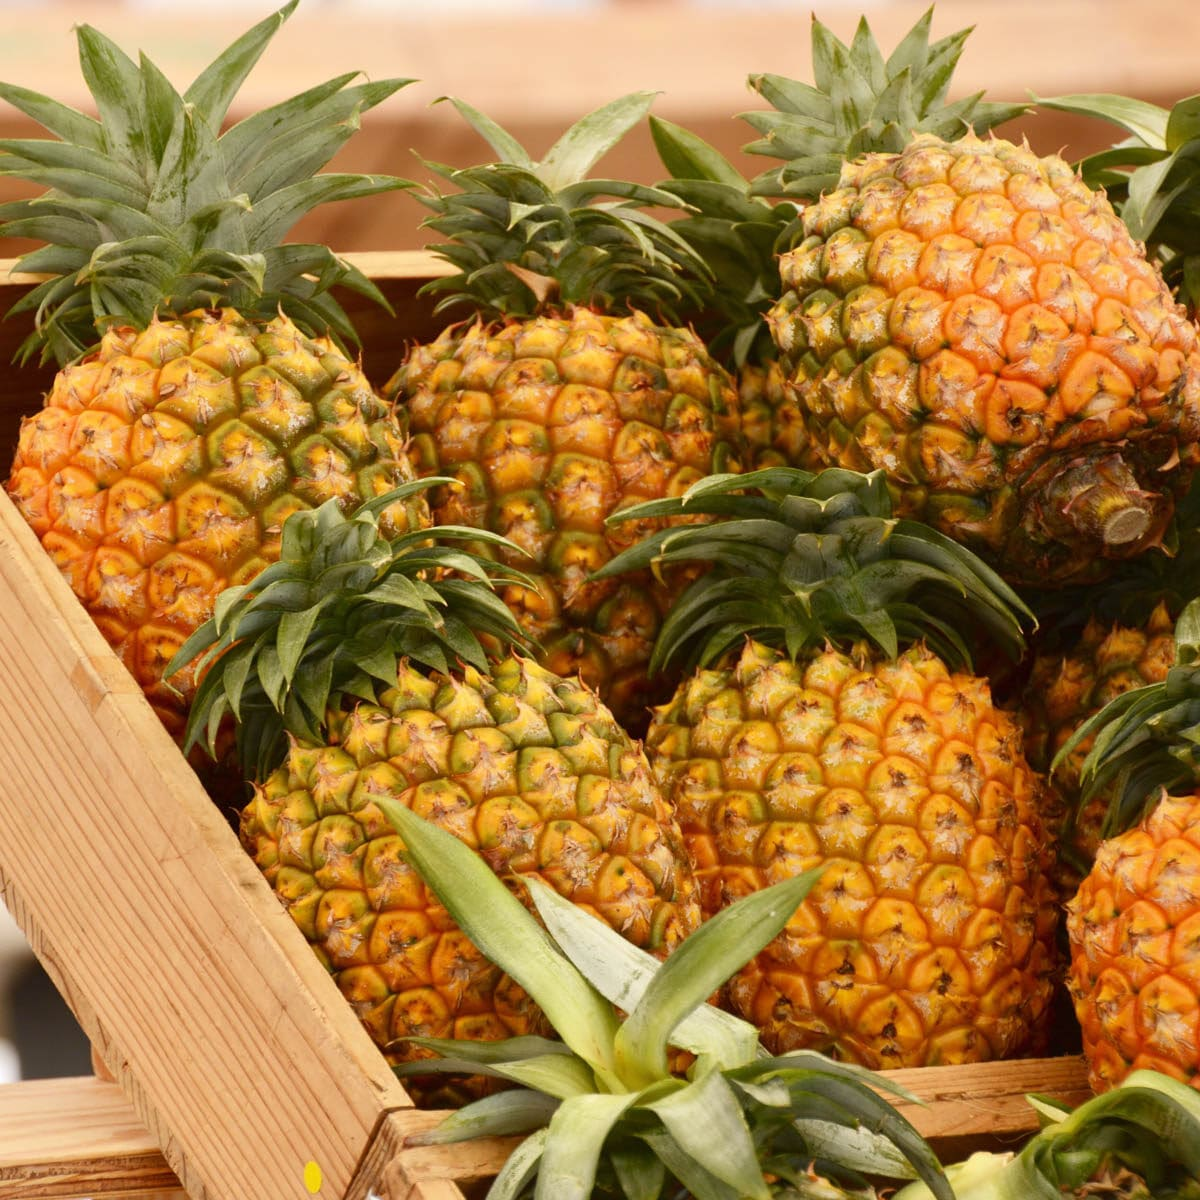 Crate full of pineapples at a store